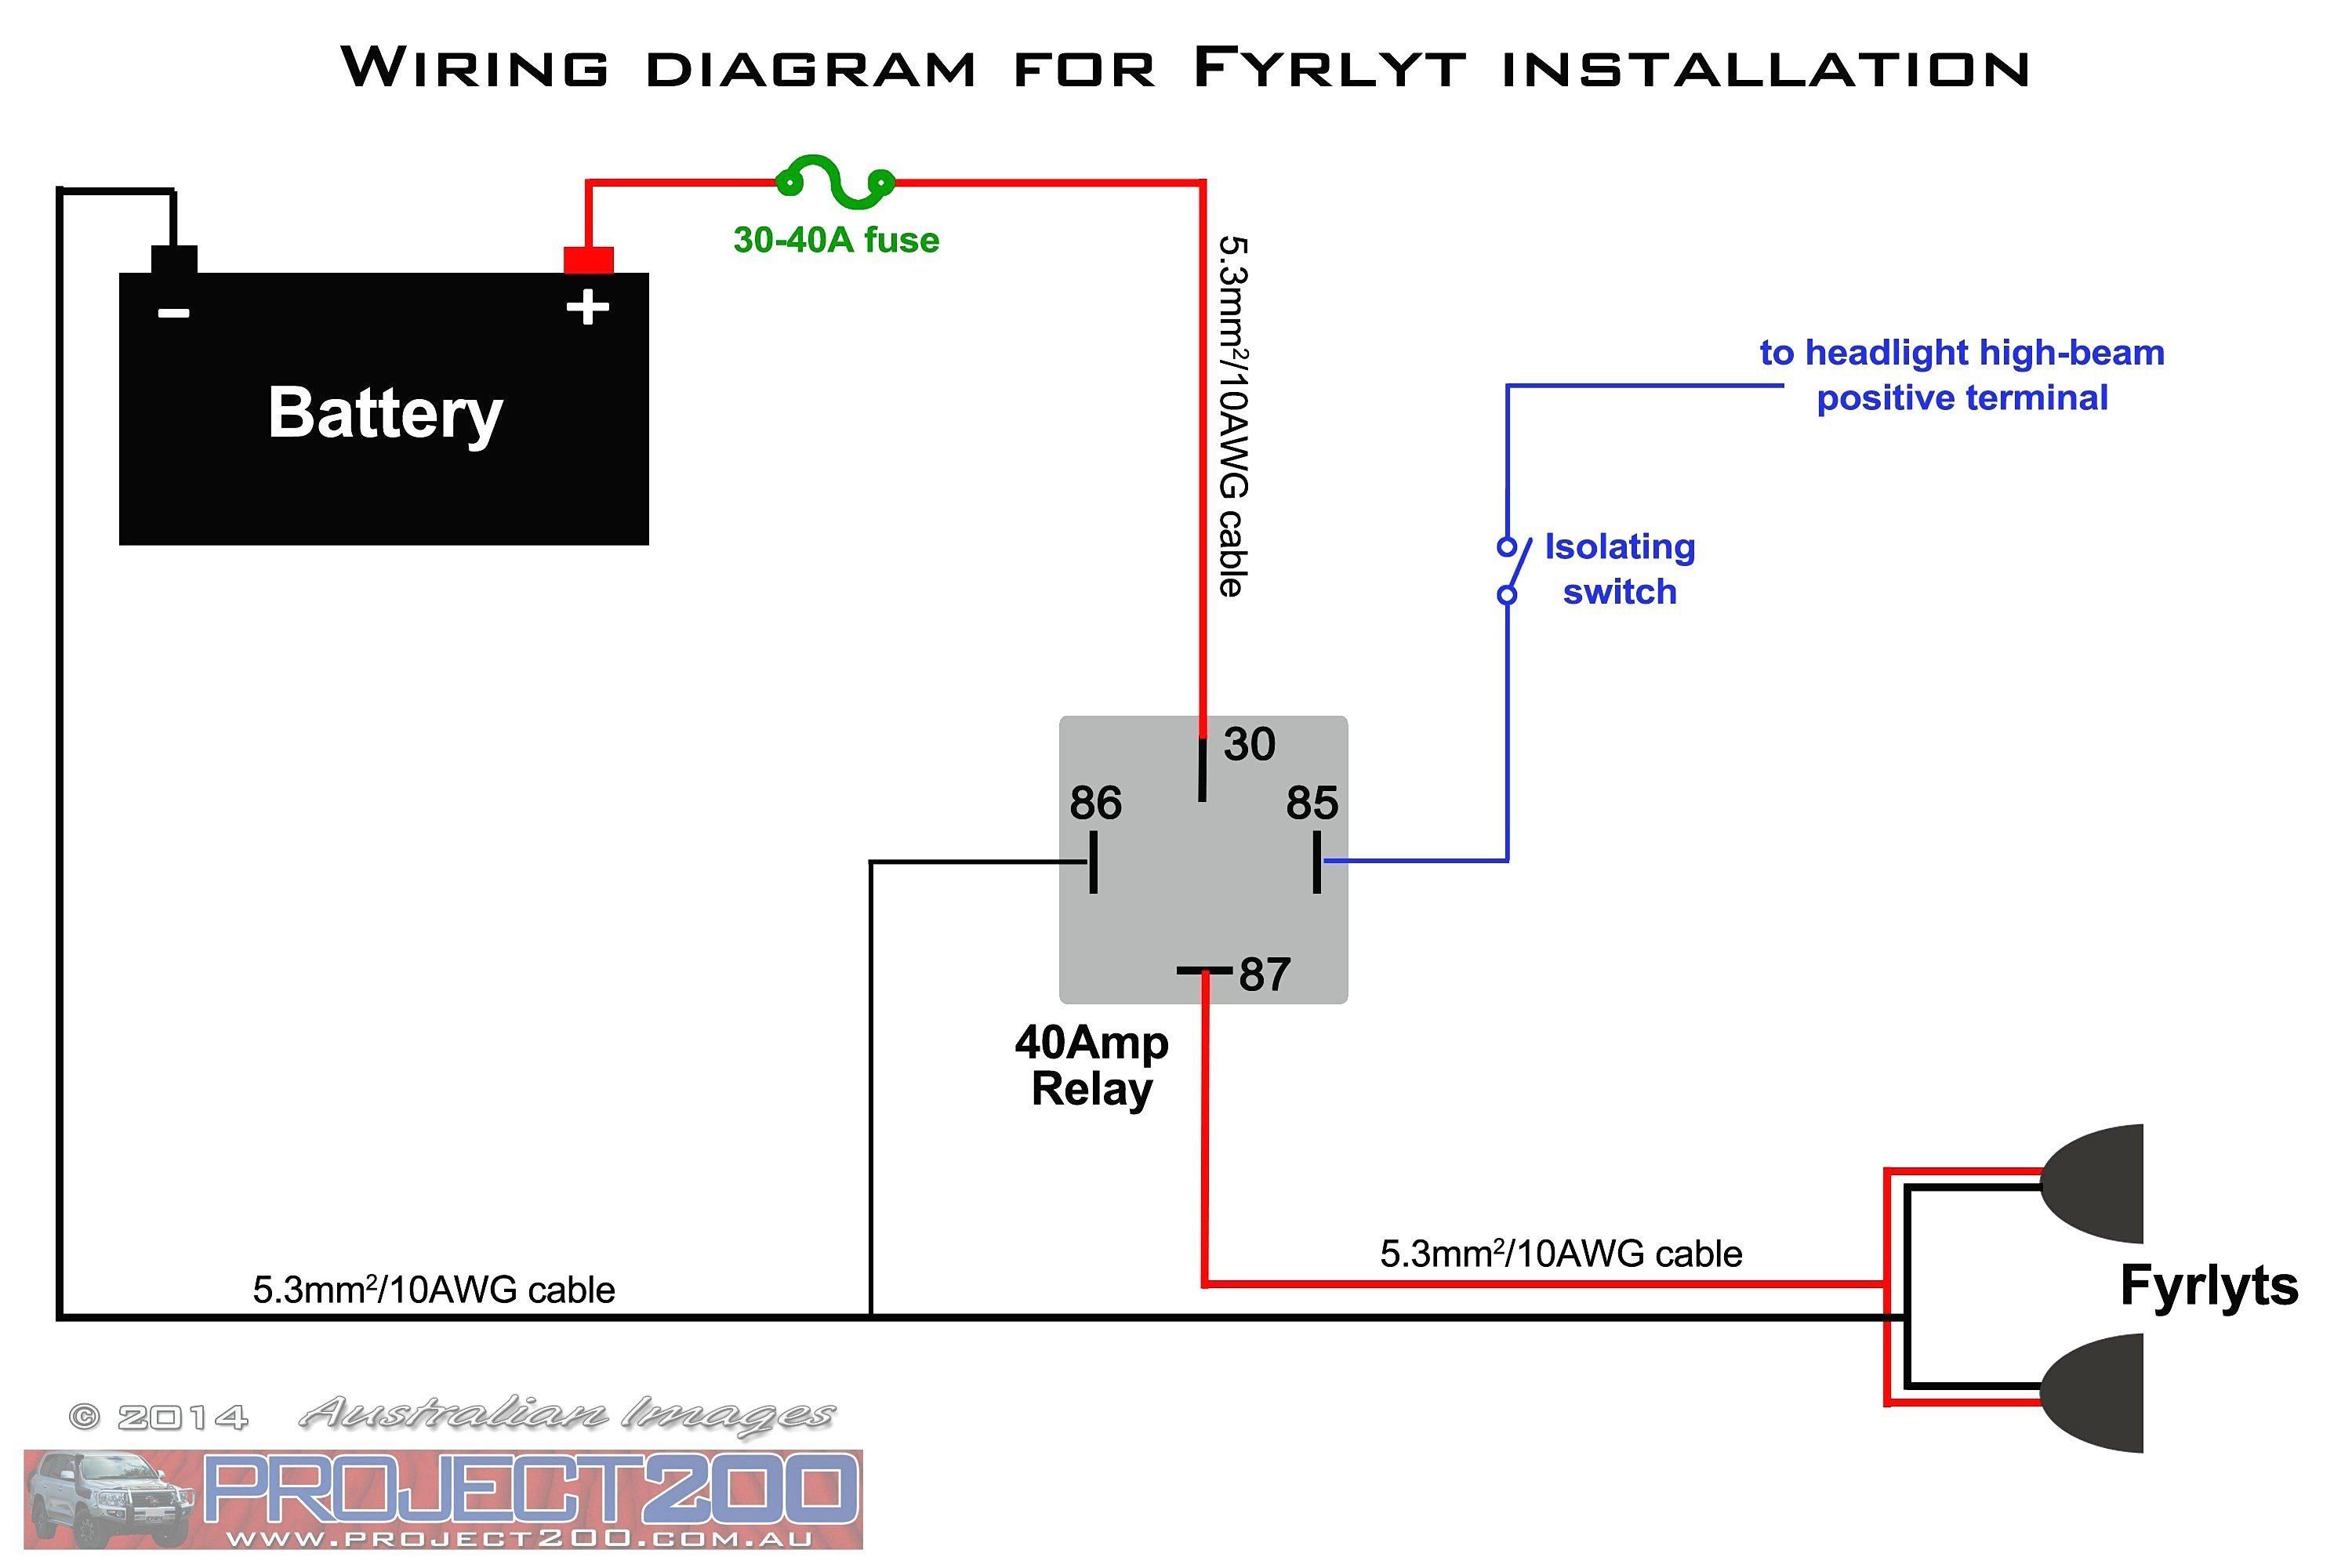 10 pin relay wiring diagram 4 aqz capecoral bootsvermietung de \u202210 pin relay wiring diagram images gallery